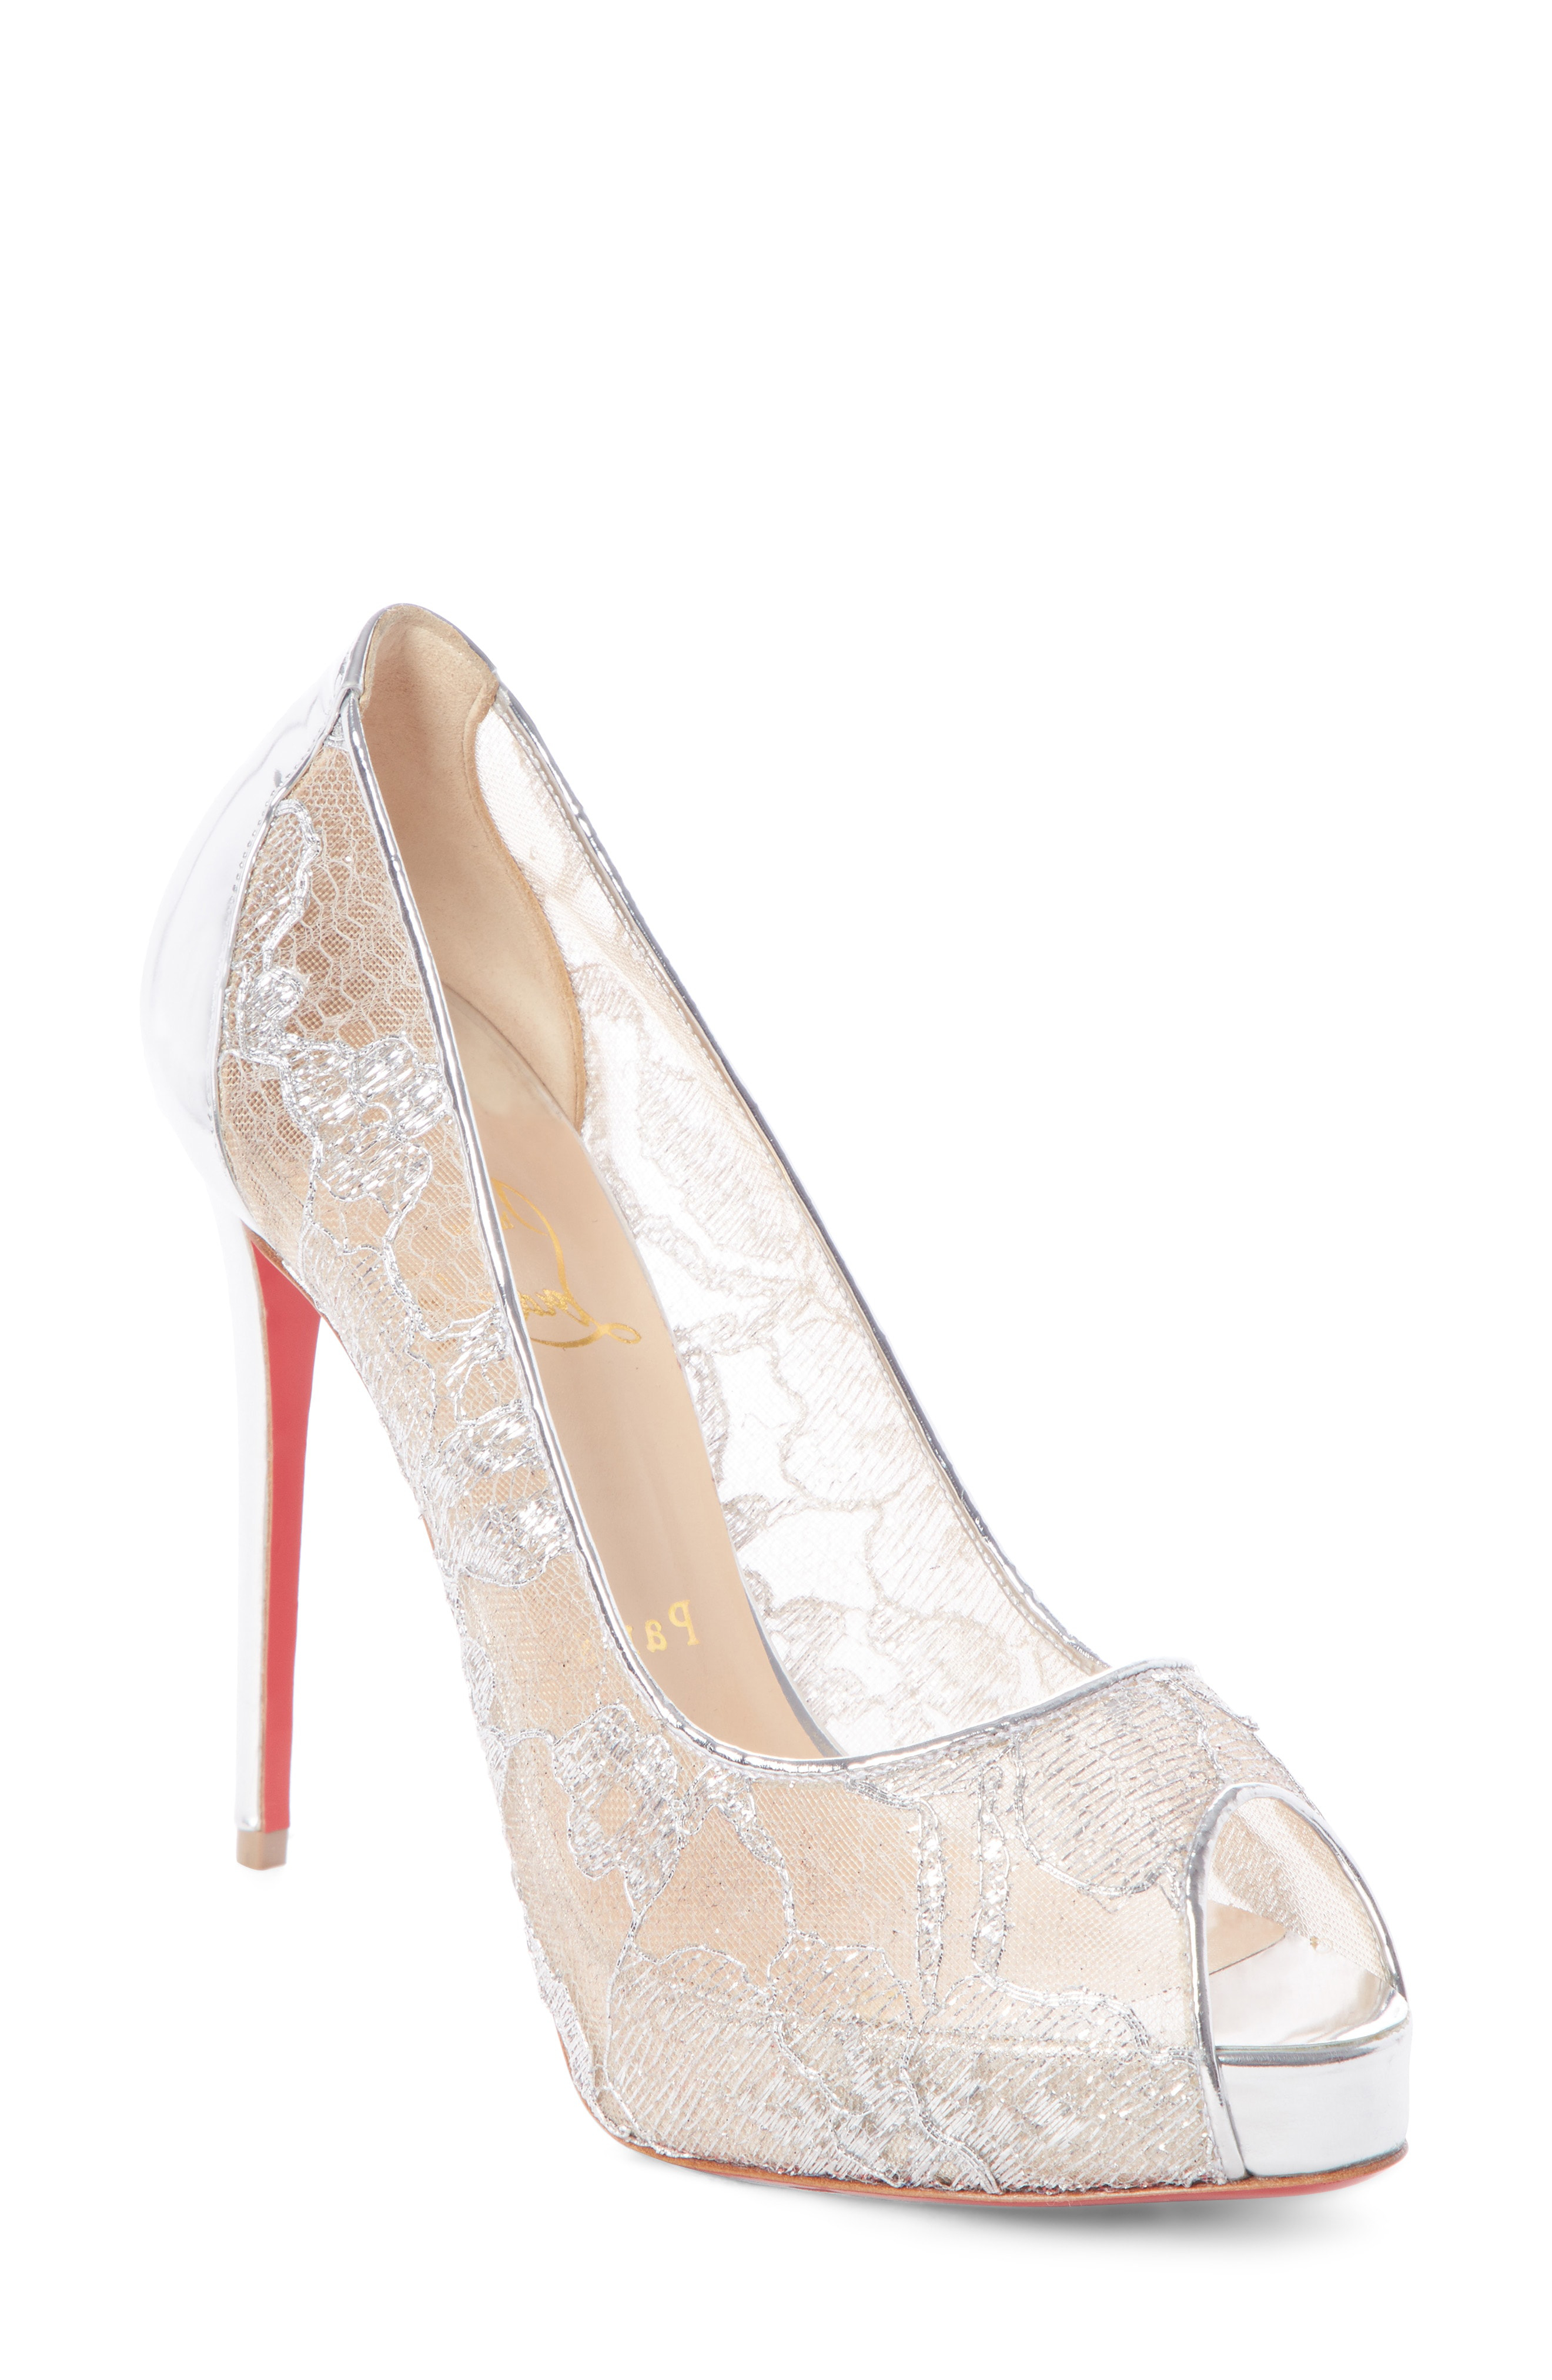 6ae4018192f1 Christian Louboutin Very Lace 120Mm Metallic Peep-Toe Red Sole Pumps In  Silver